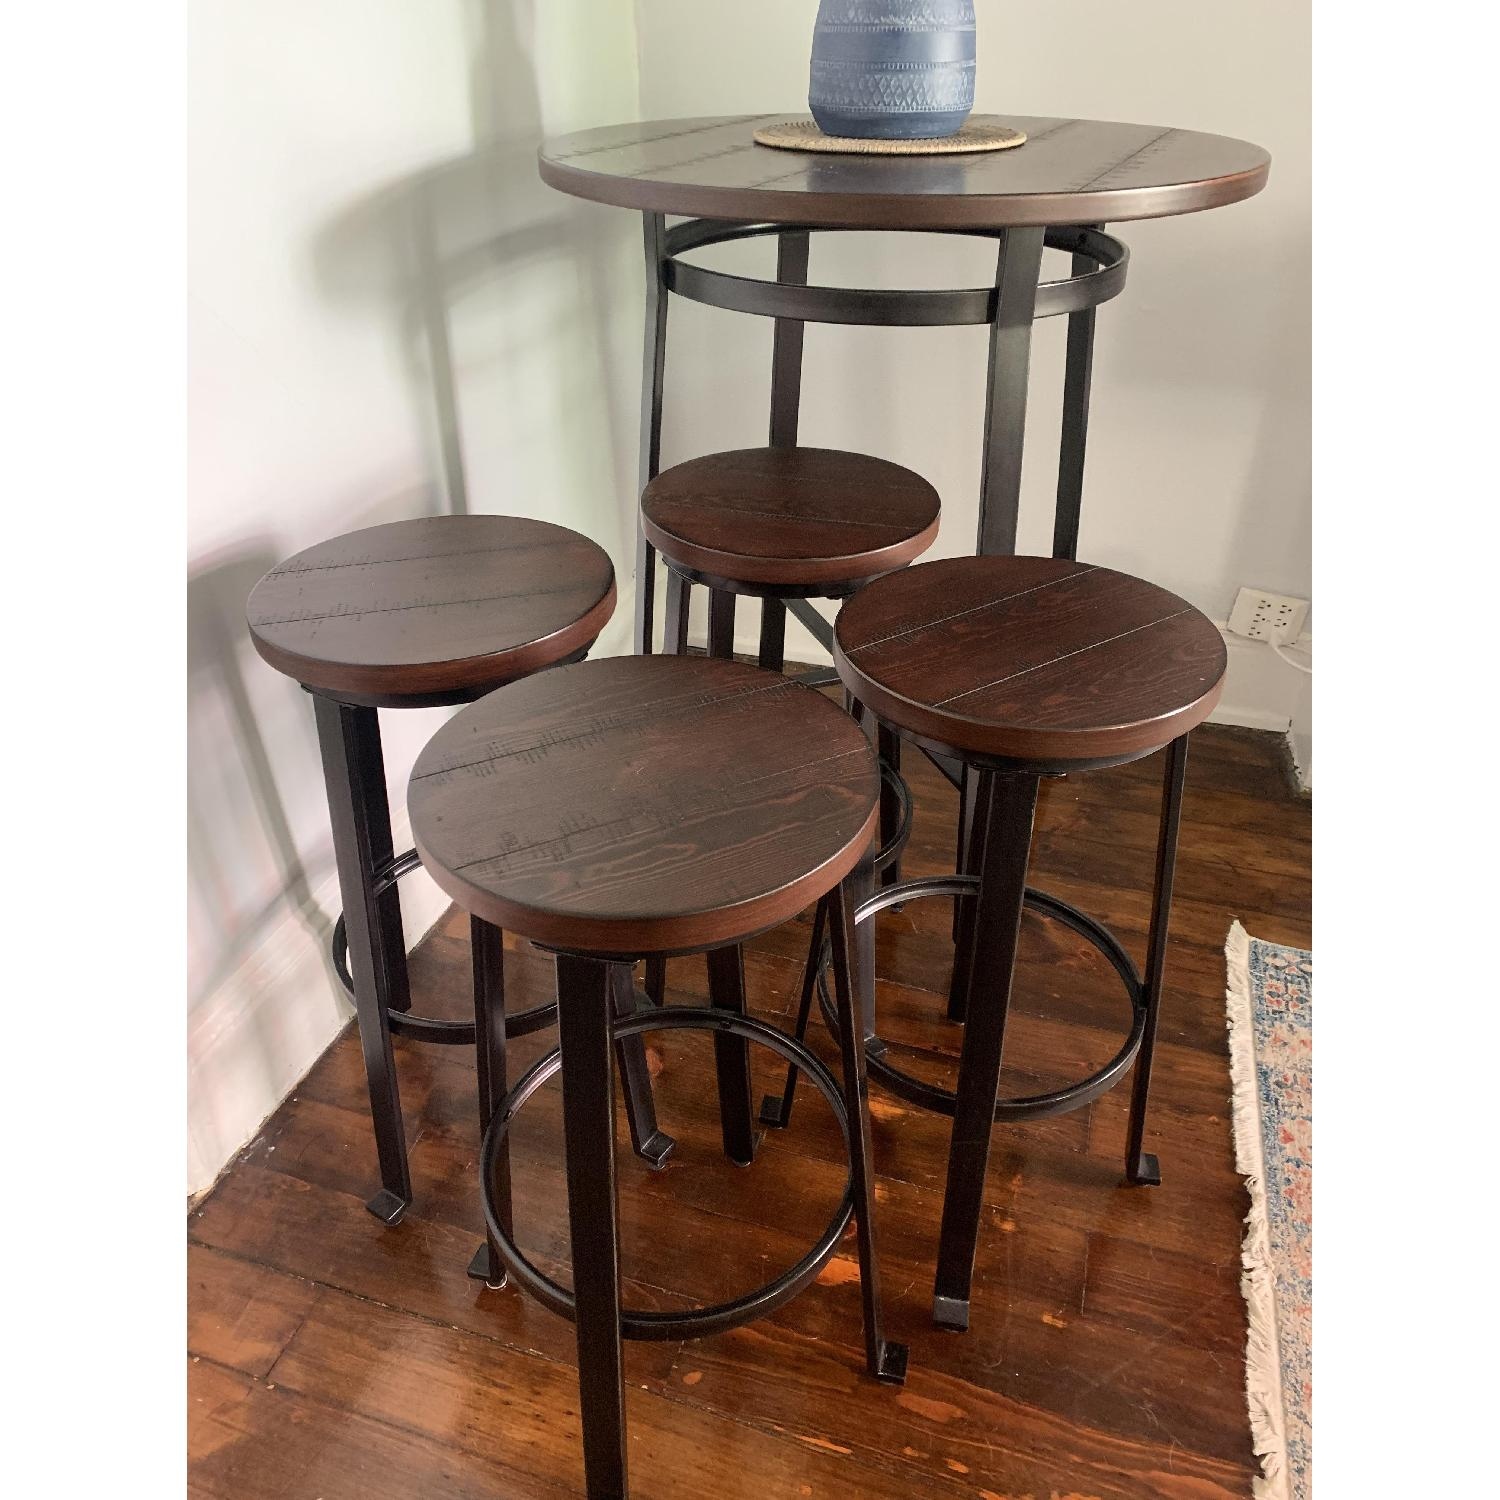 Ashley Challiman Pub Height Dining Table w/ 4 Stools - image-4